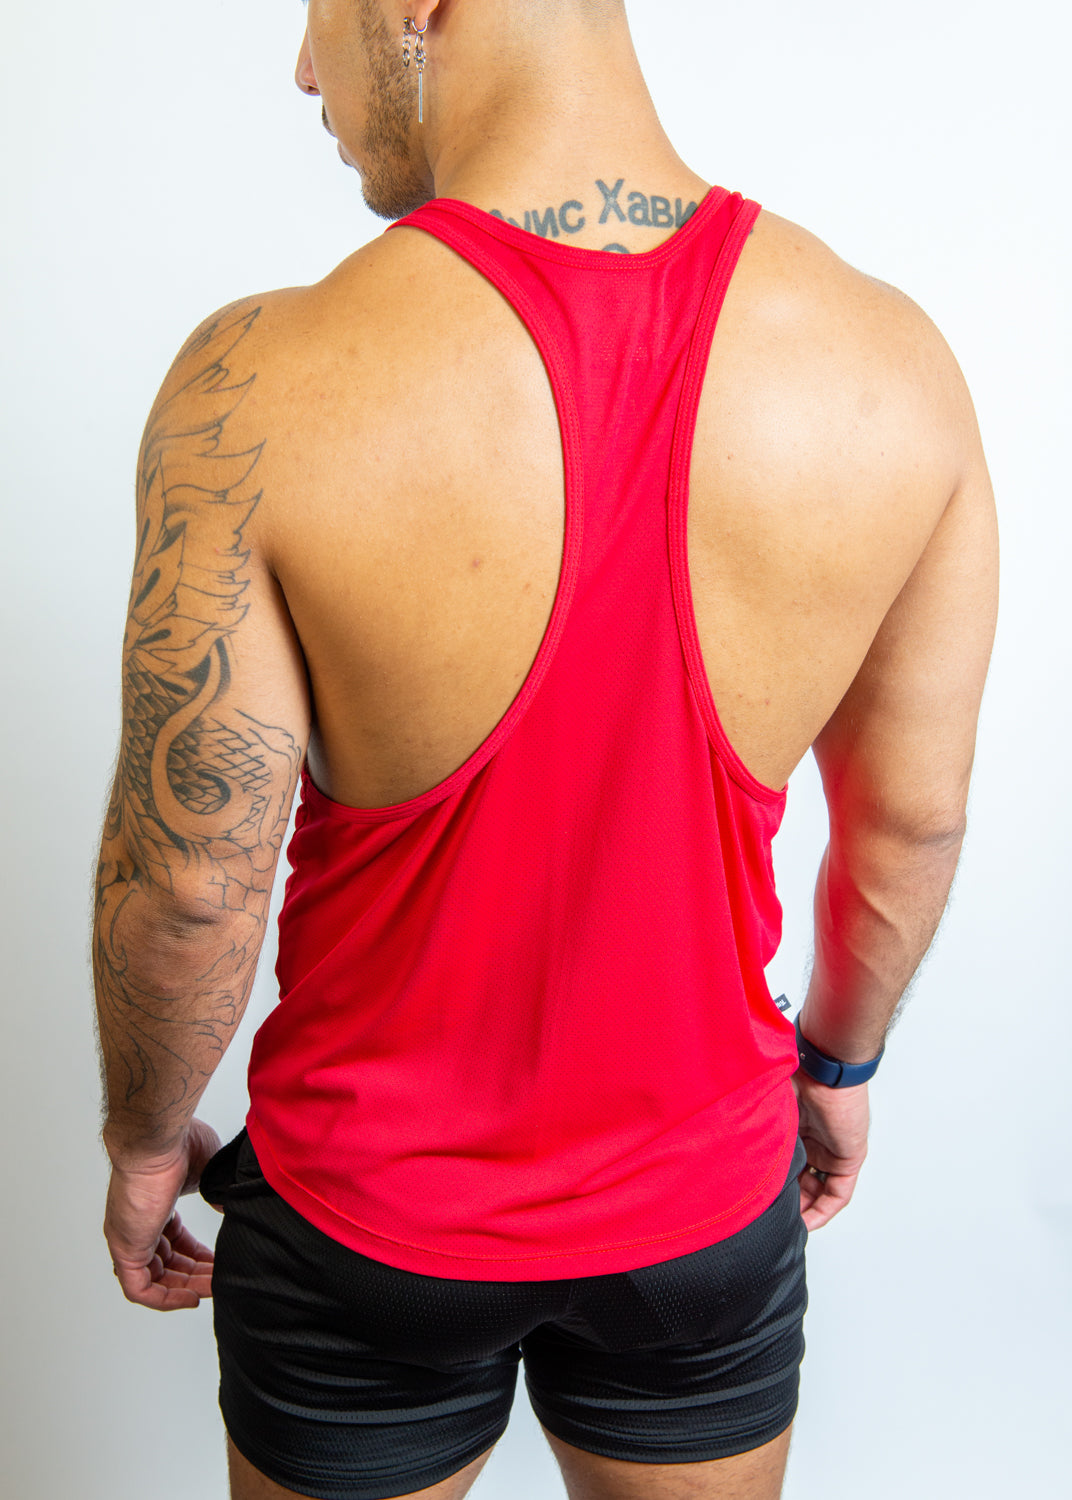 CREATIVE MALE GYM TANK - 5 Colors to Choose From